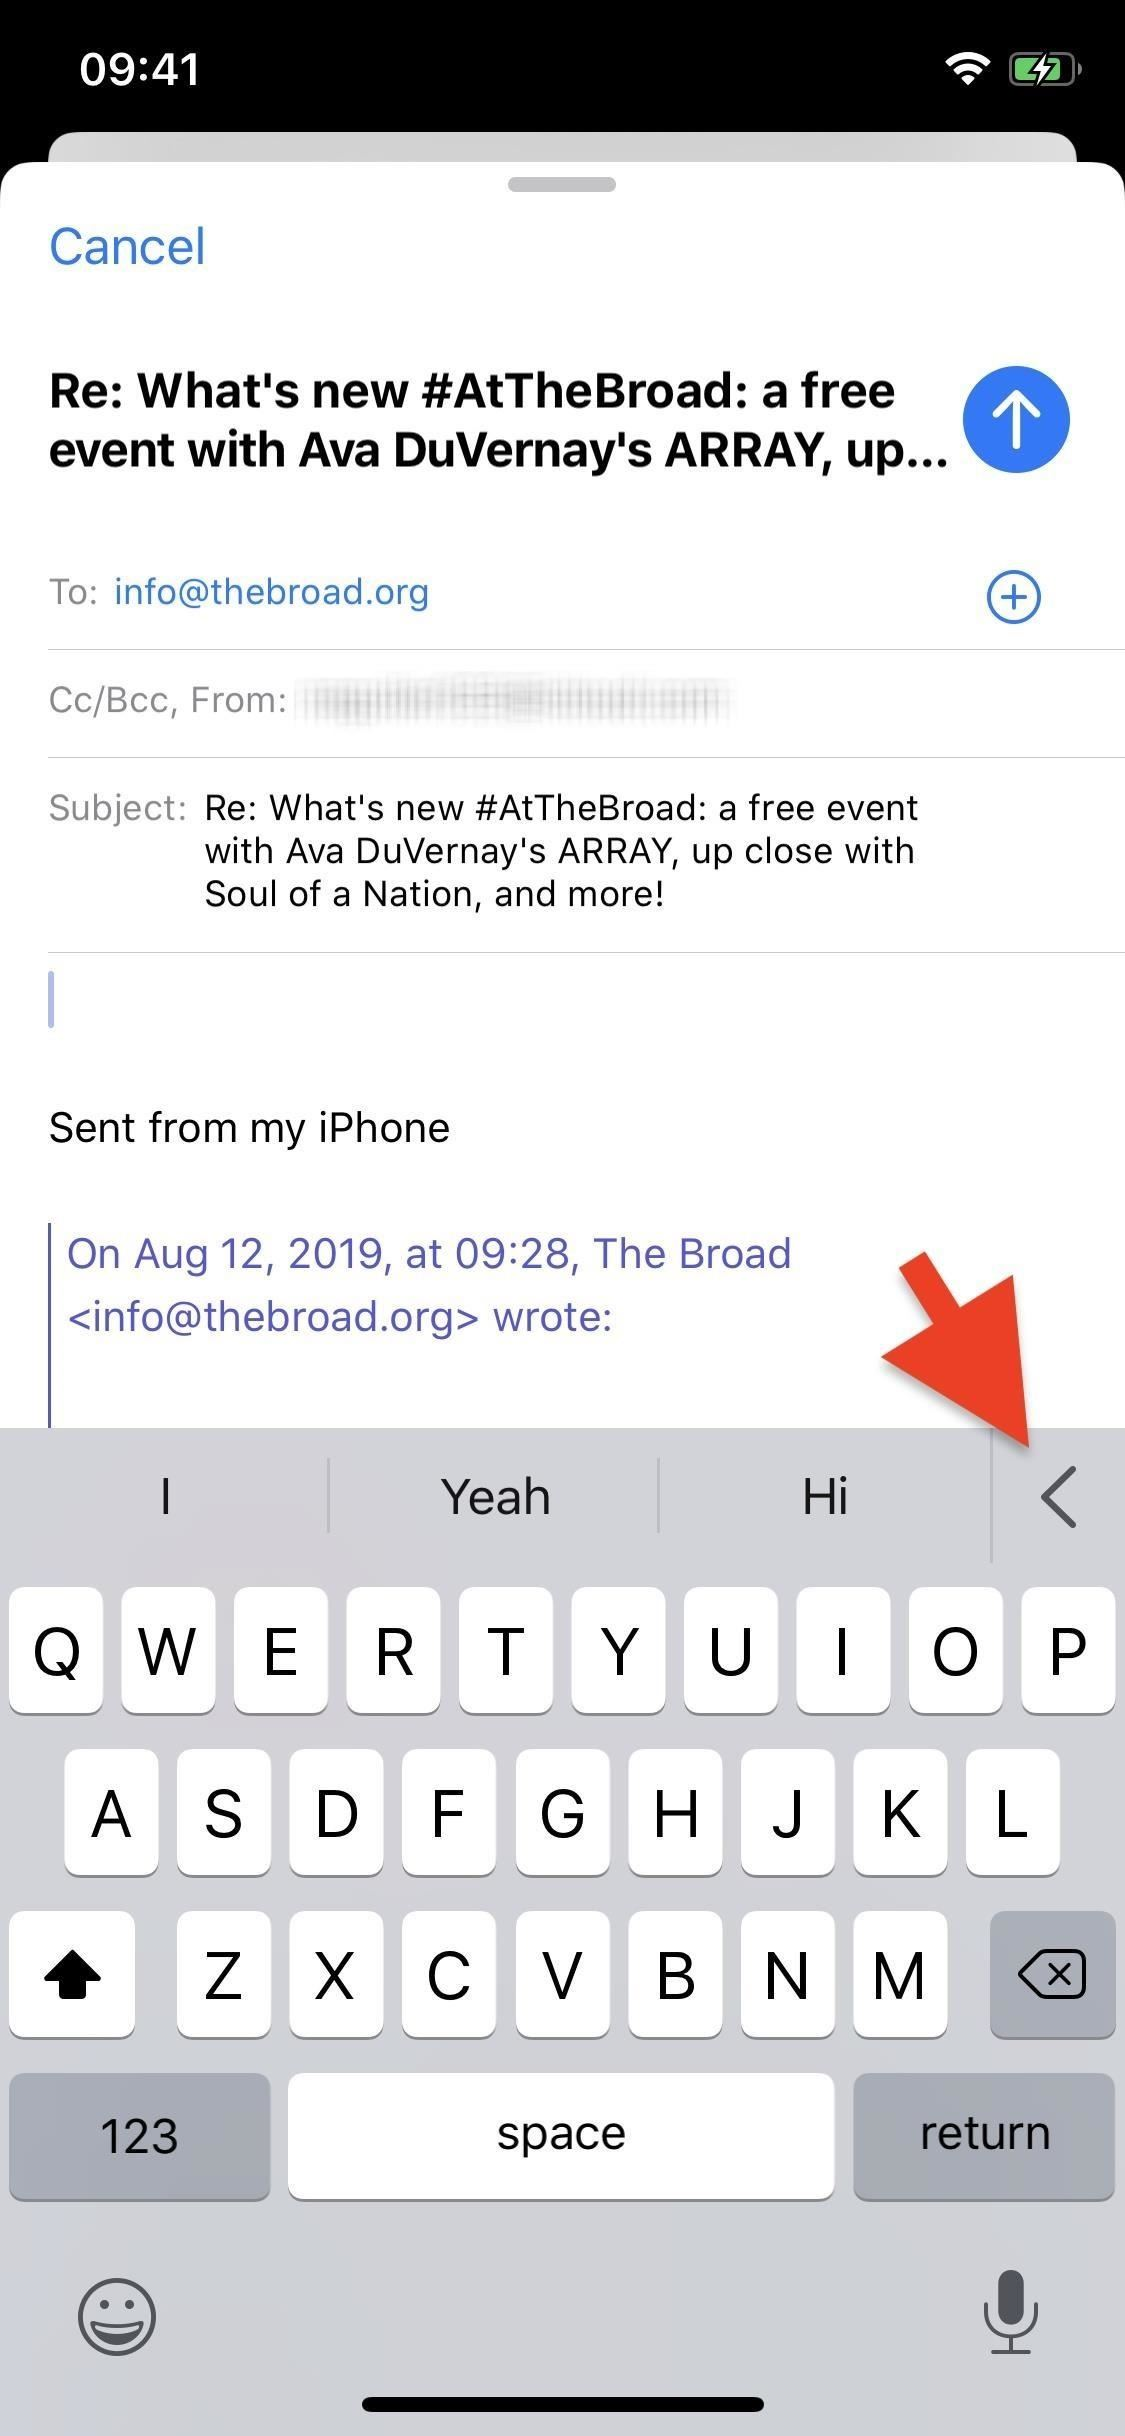 22 New Features in iOS 13's Mail App to Help You Master the Art of the Email